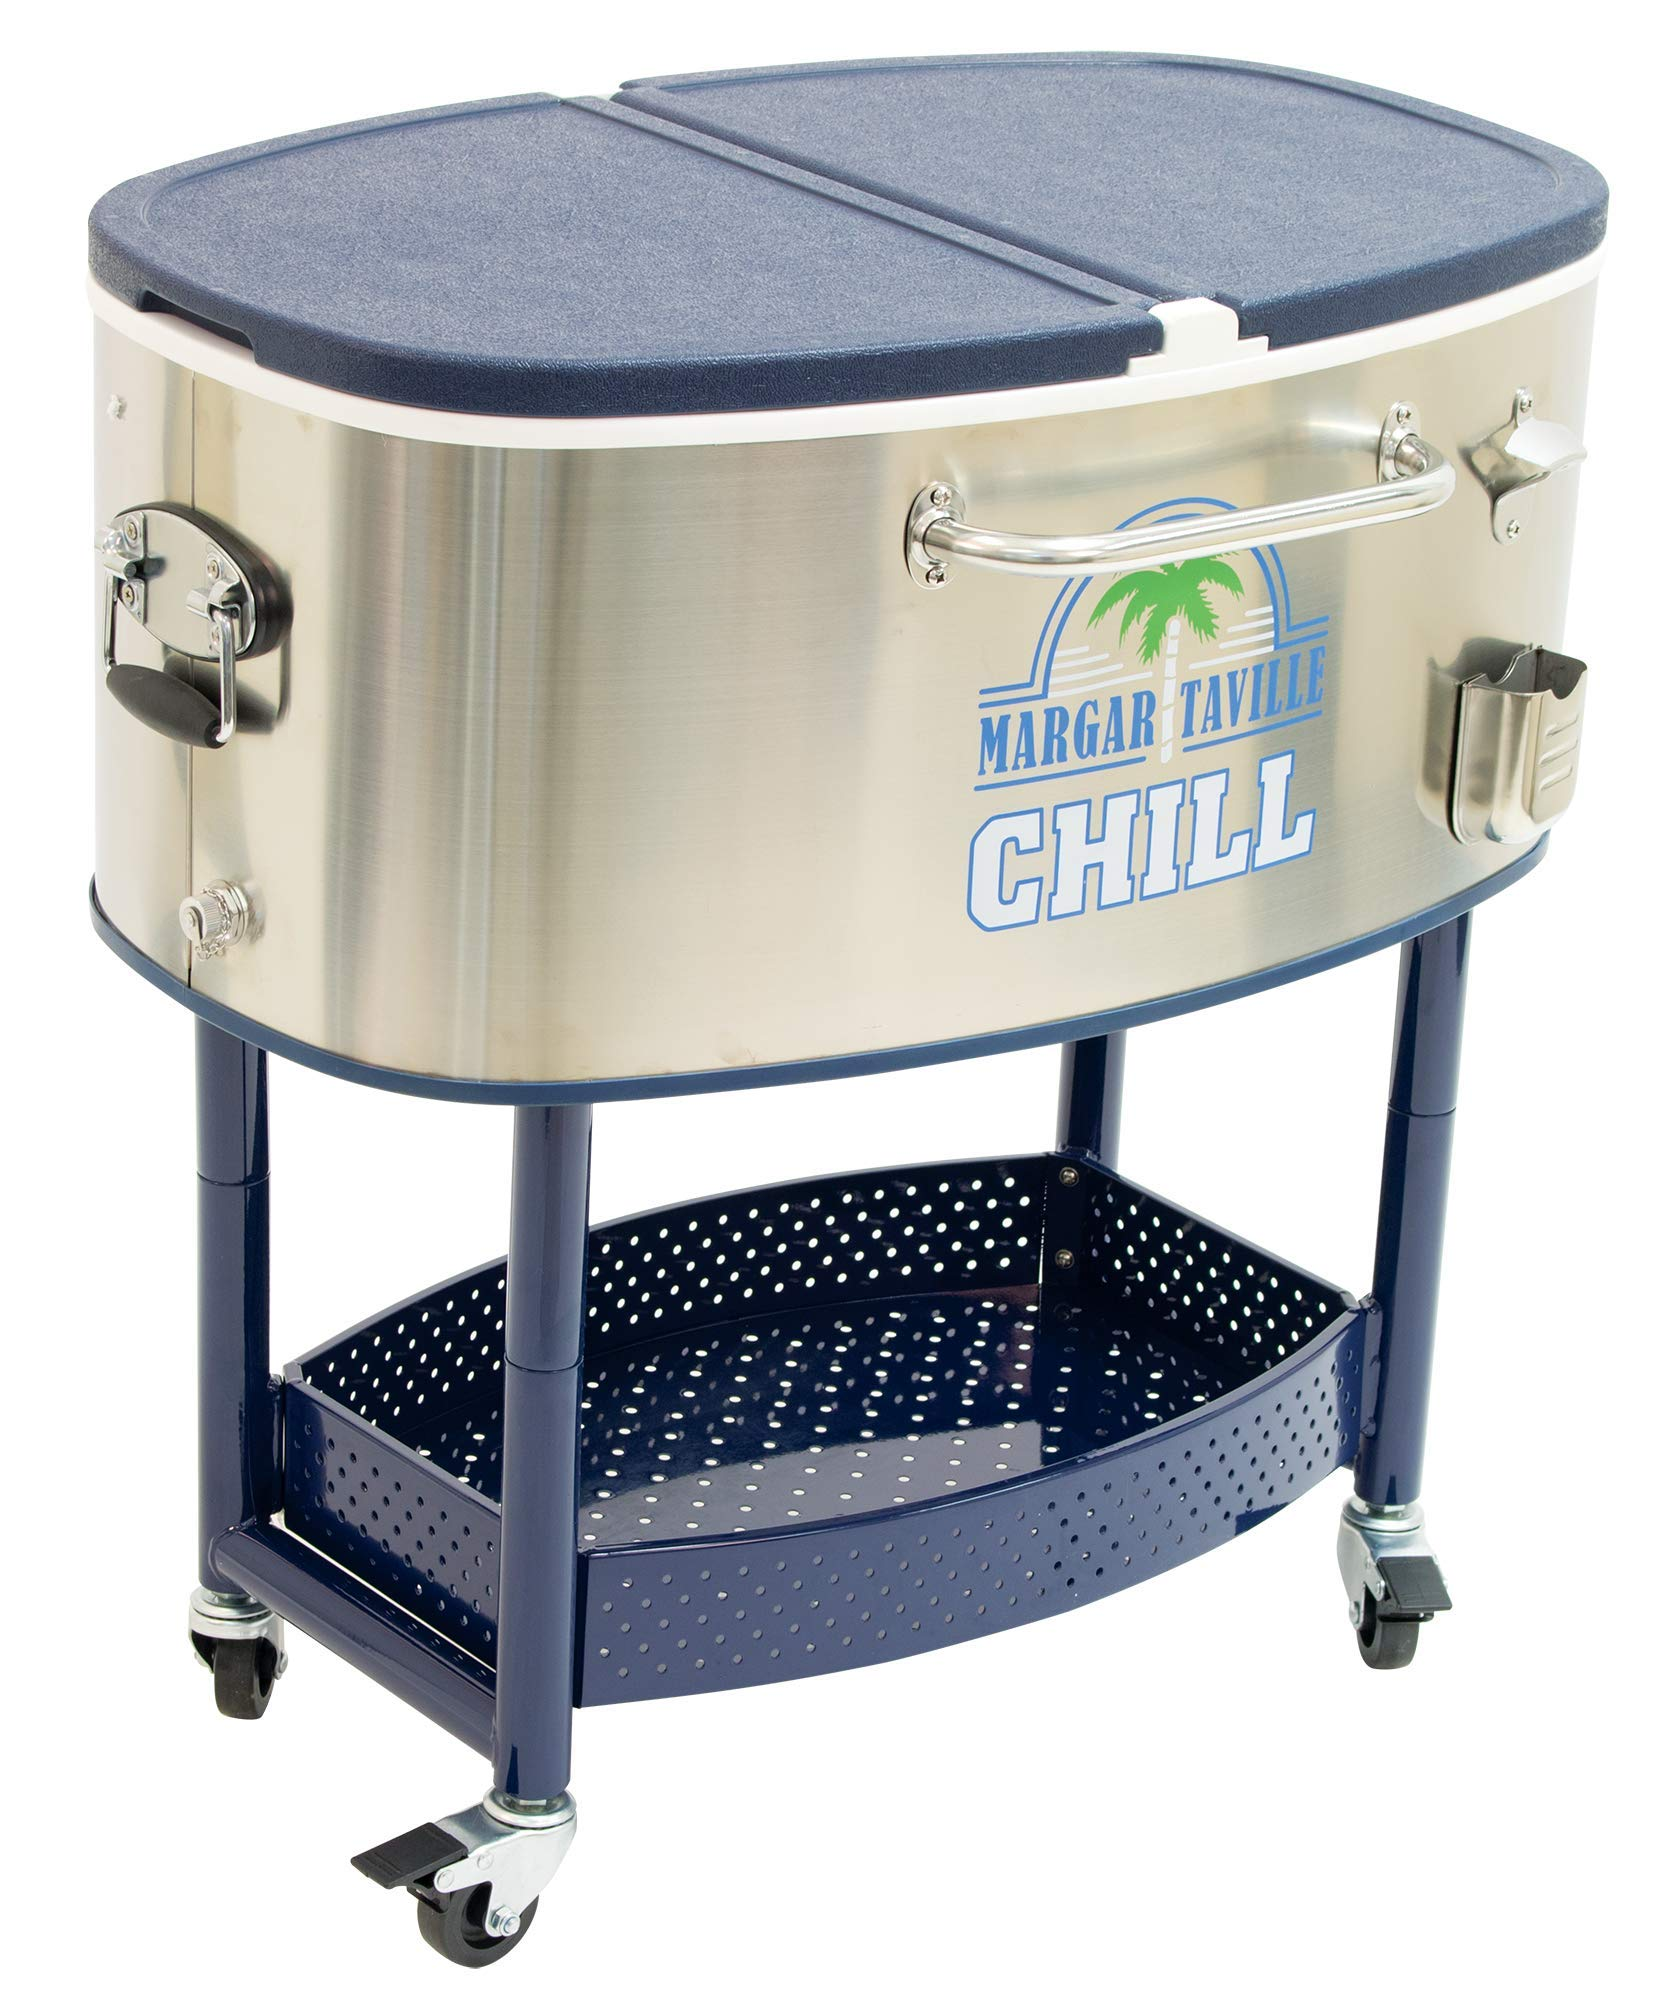 Margaritaville 77 Quart Oval Stainless Steel Outdoor Cooler with Wheels - Margaritaville Chill by Margaritaville Outdoor